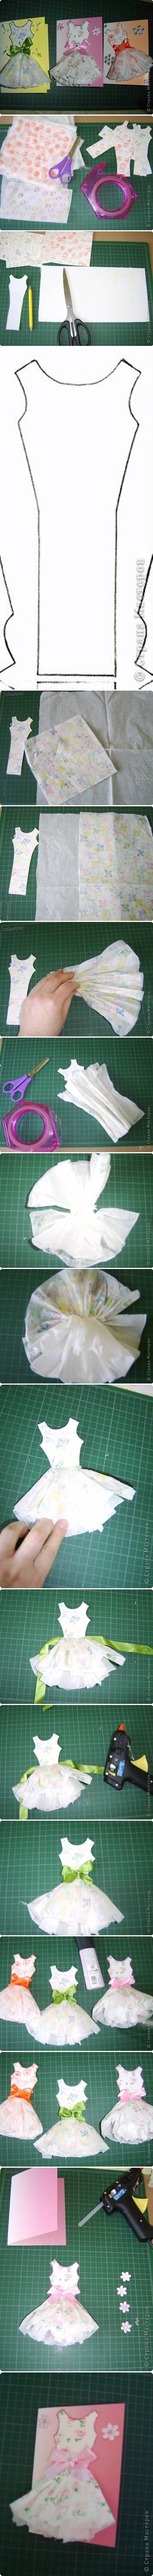 DIY Paper Dress Card Topper dress paper diy easy crafts